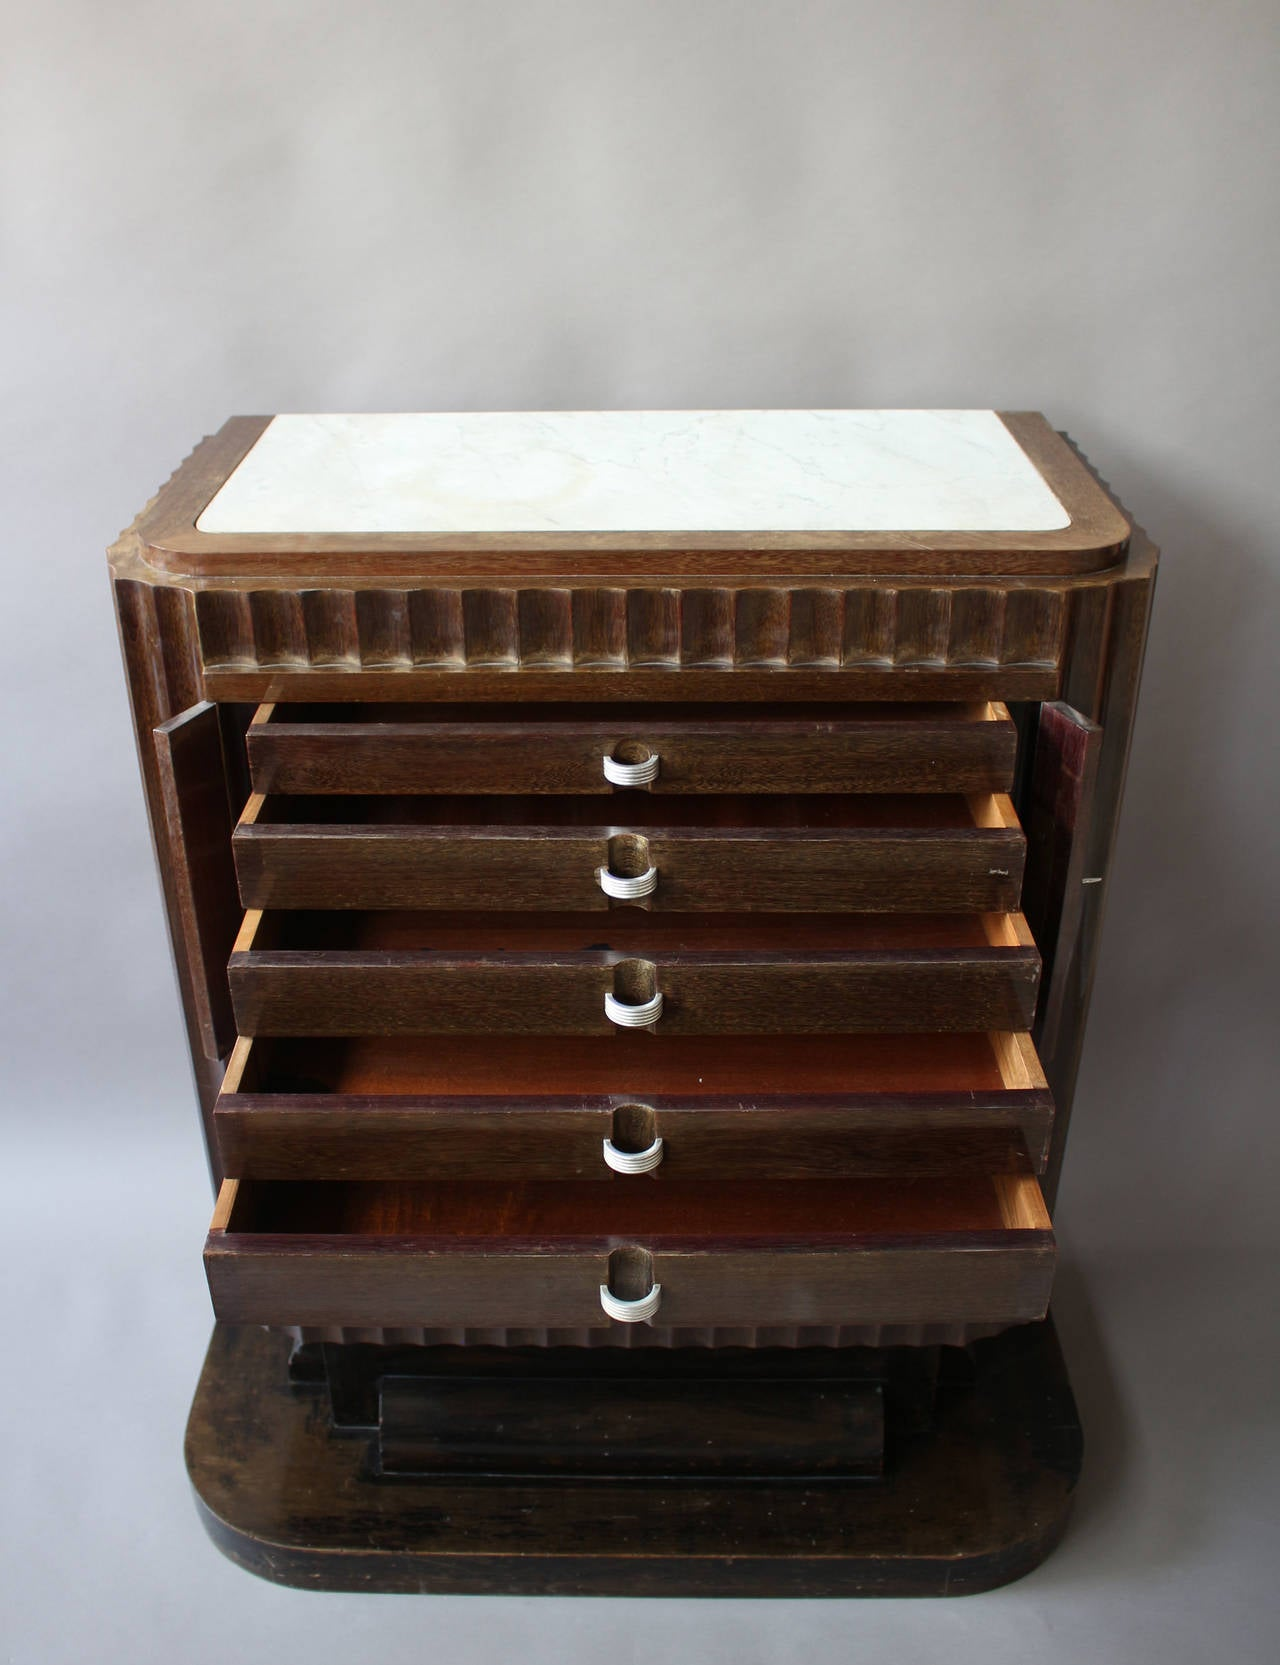 A Fine French Art Deco Silverware Cabinet by Christian Krass For Sale 1